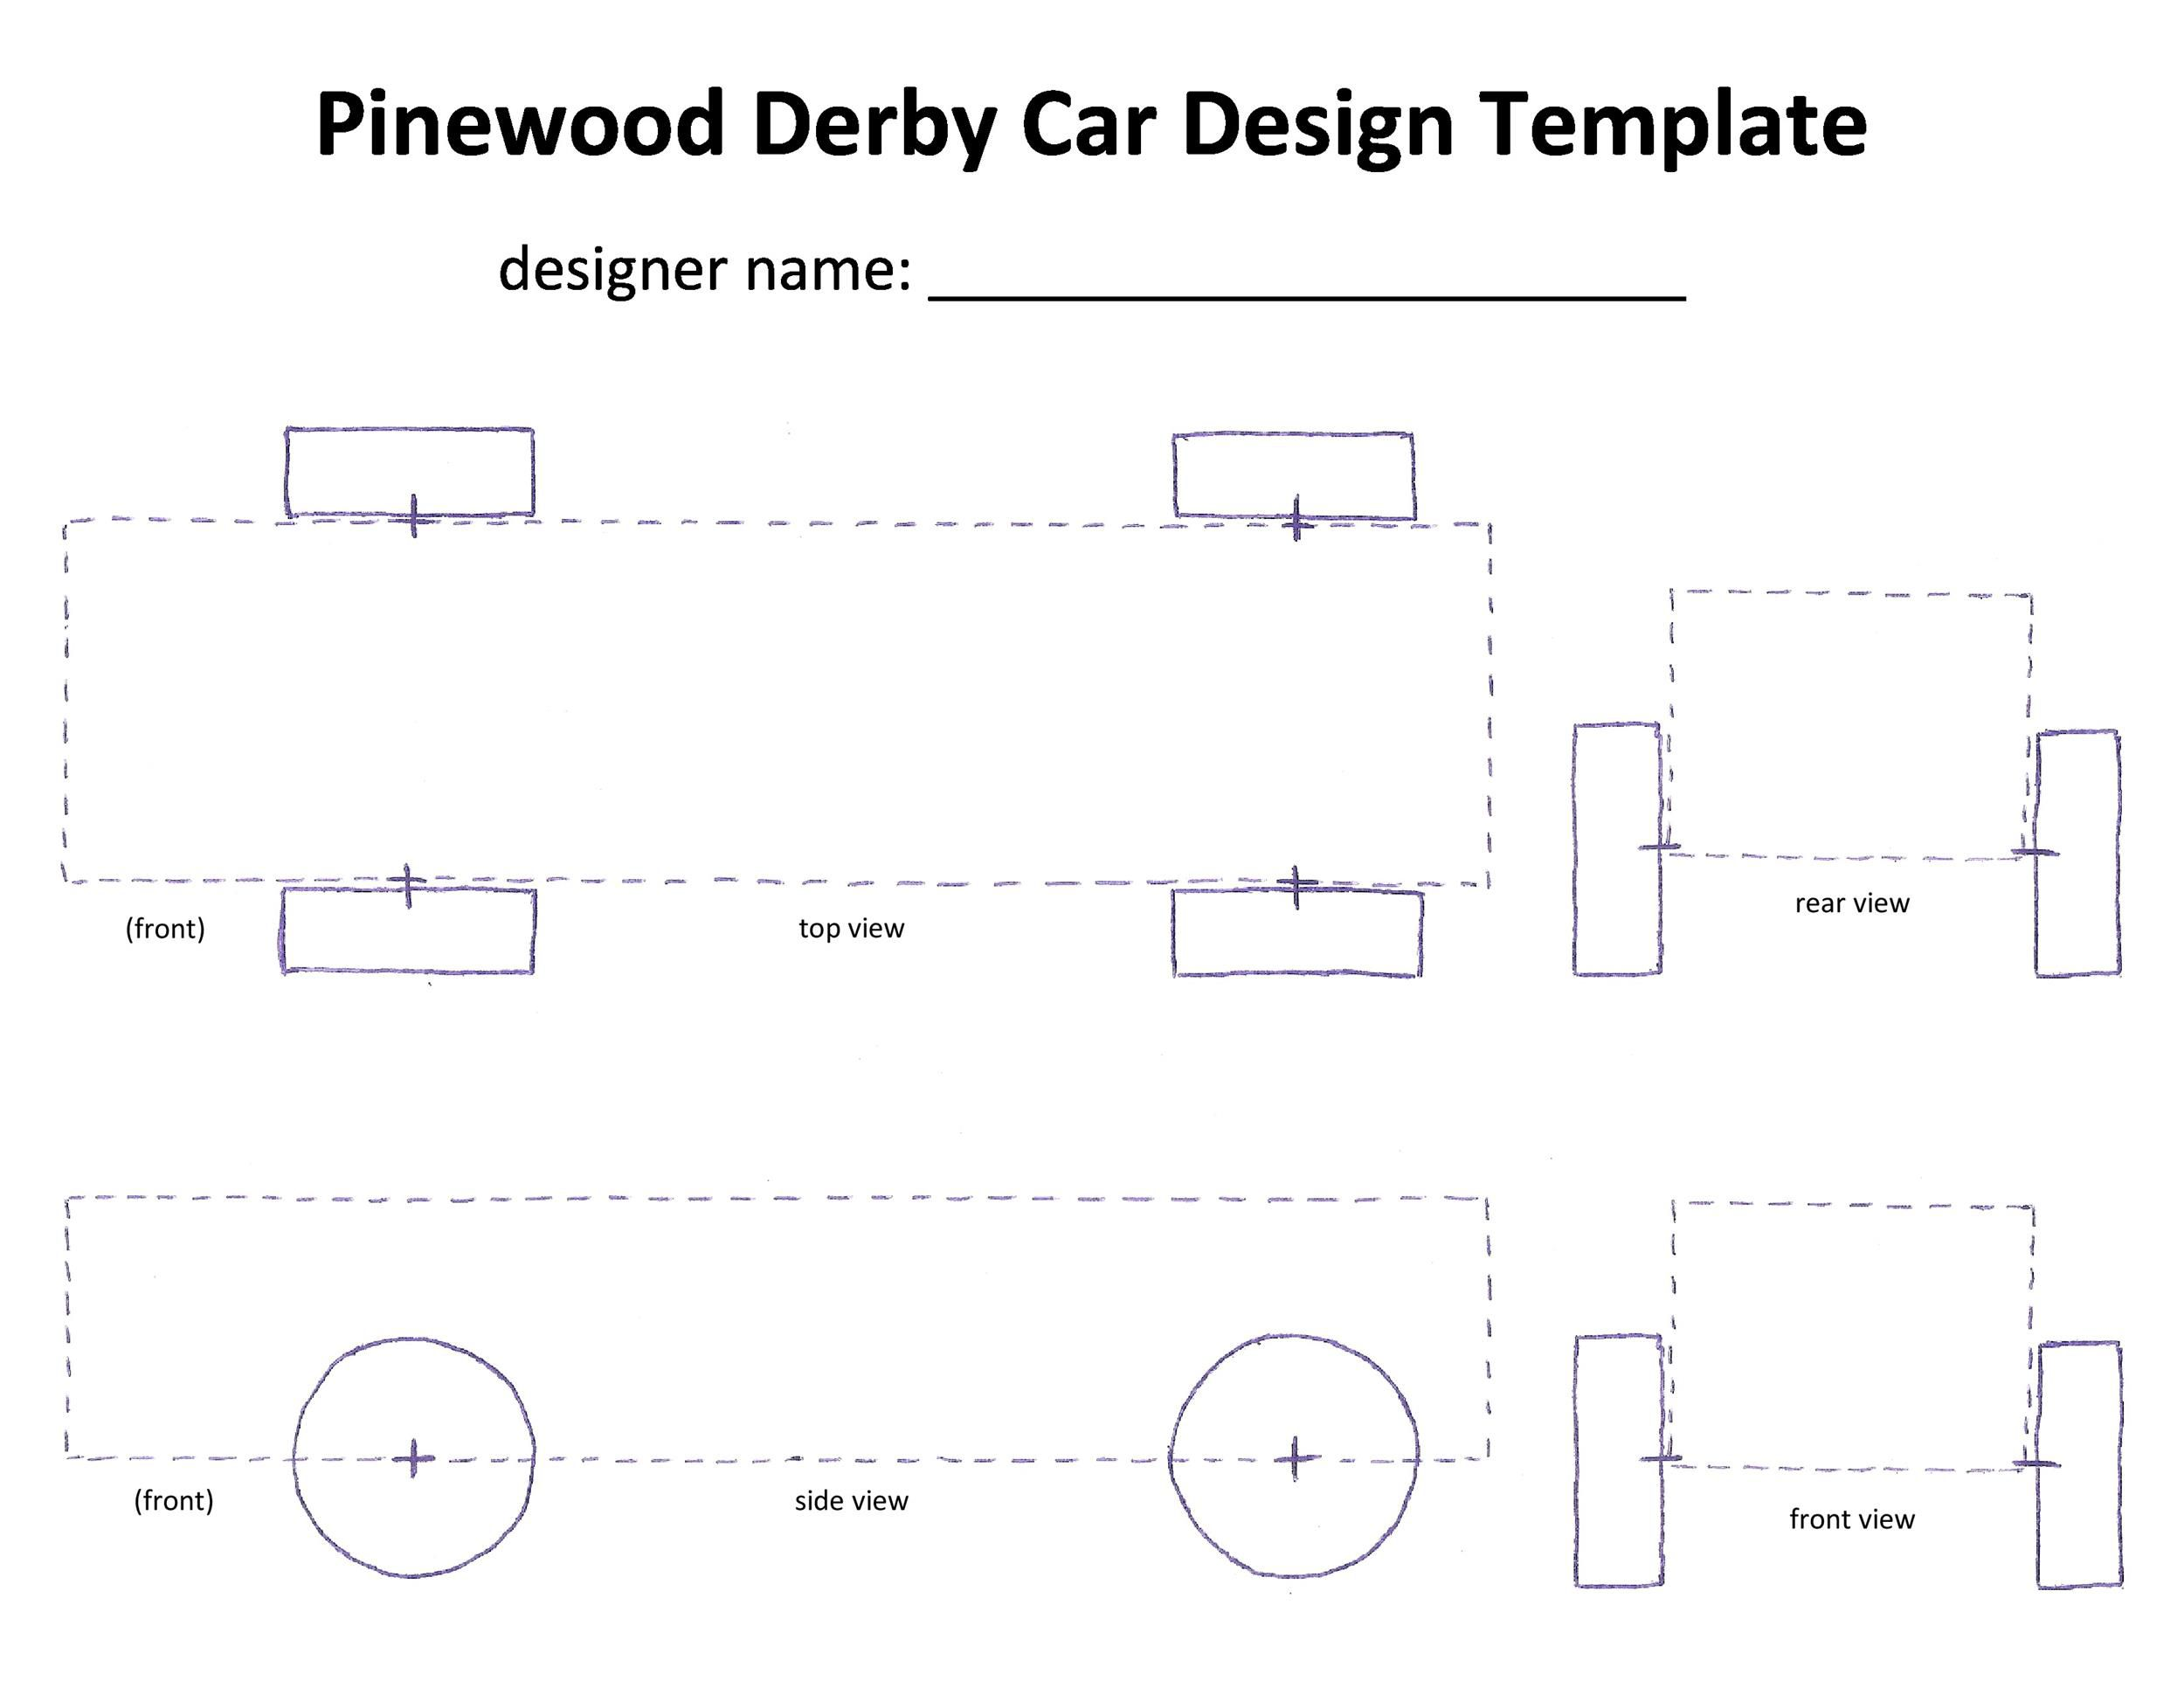 Pinewood Derby Free Template from www.addictionary.org